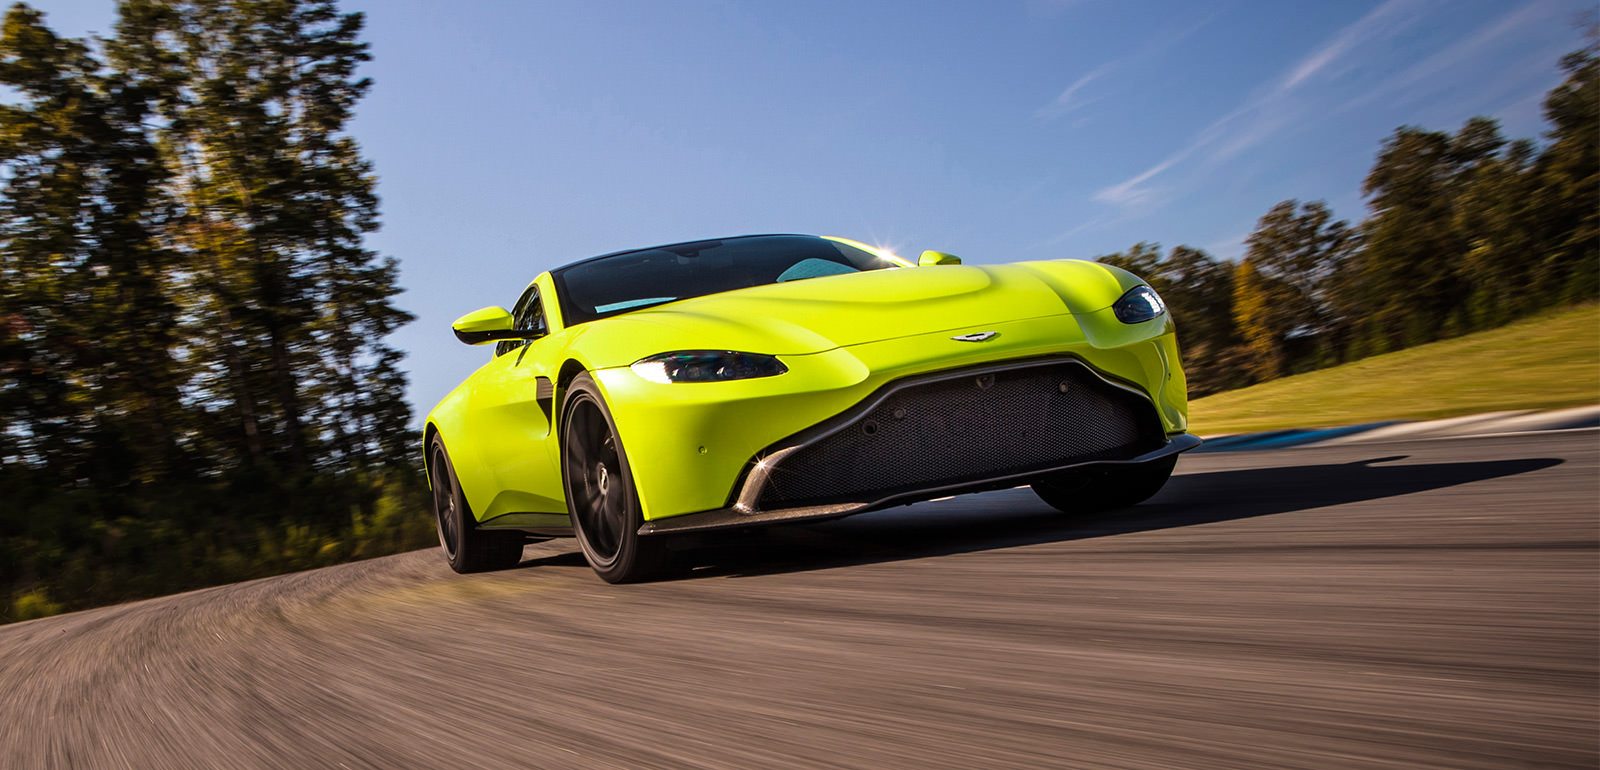 New-Aston-Martin-Vantage-main